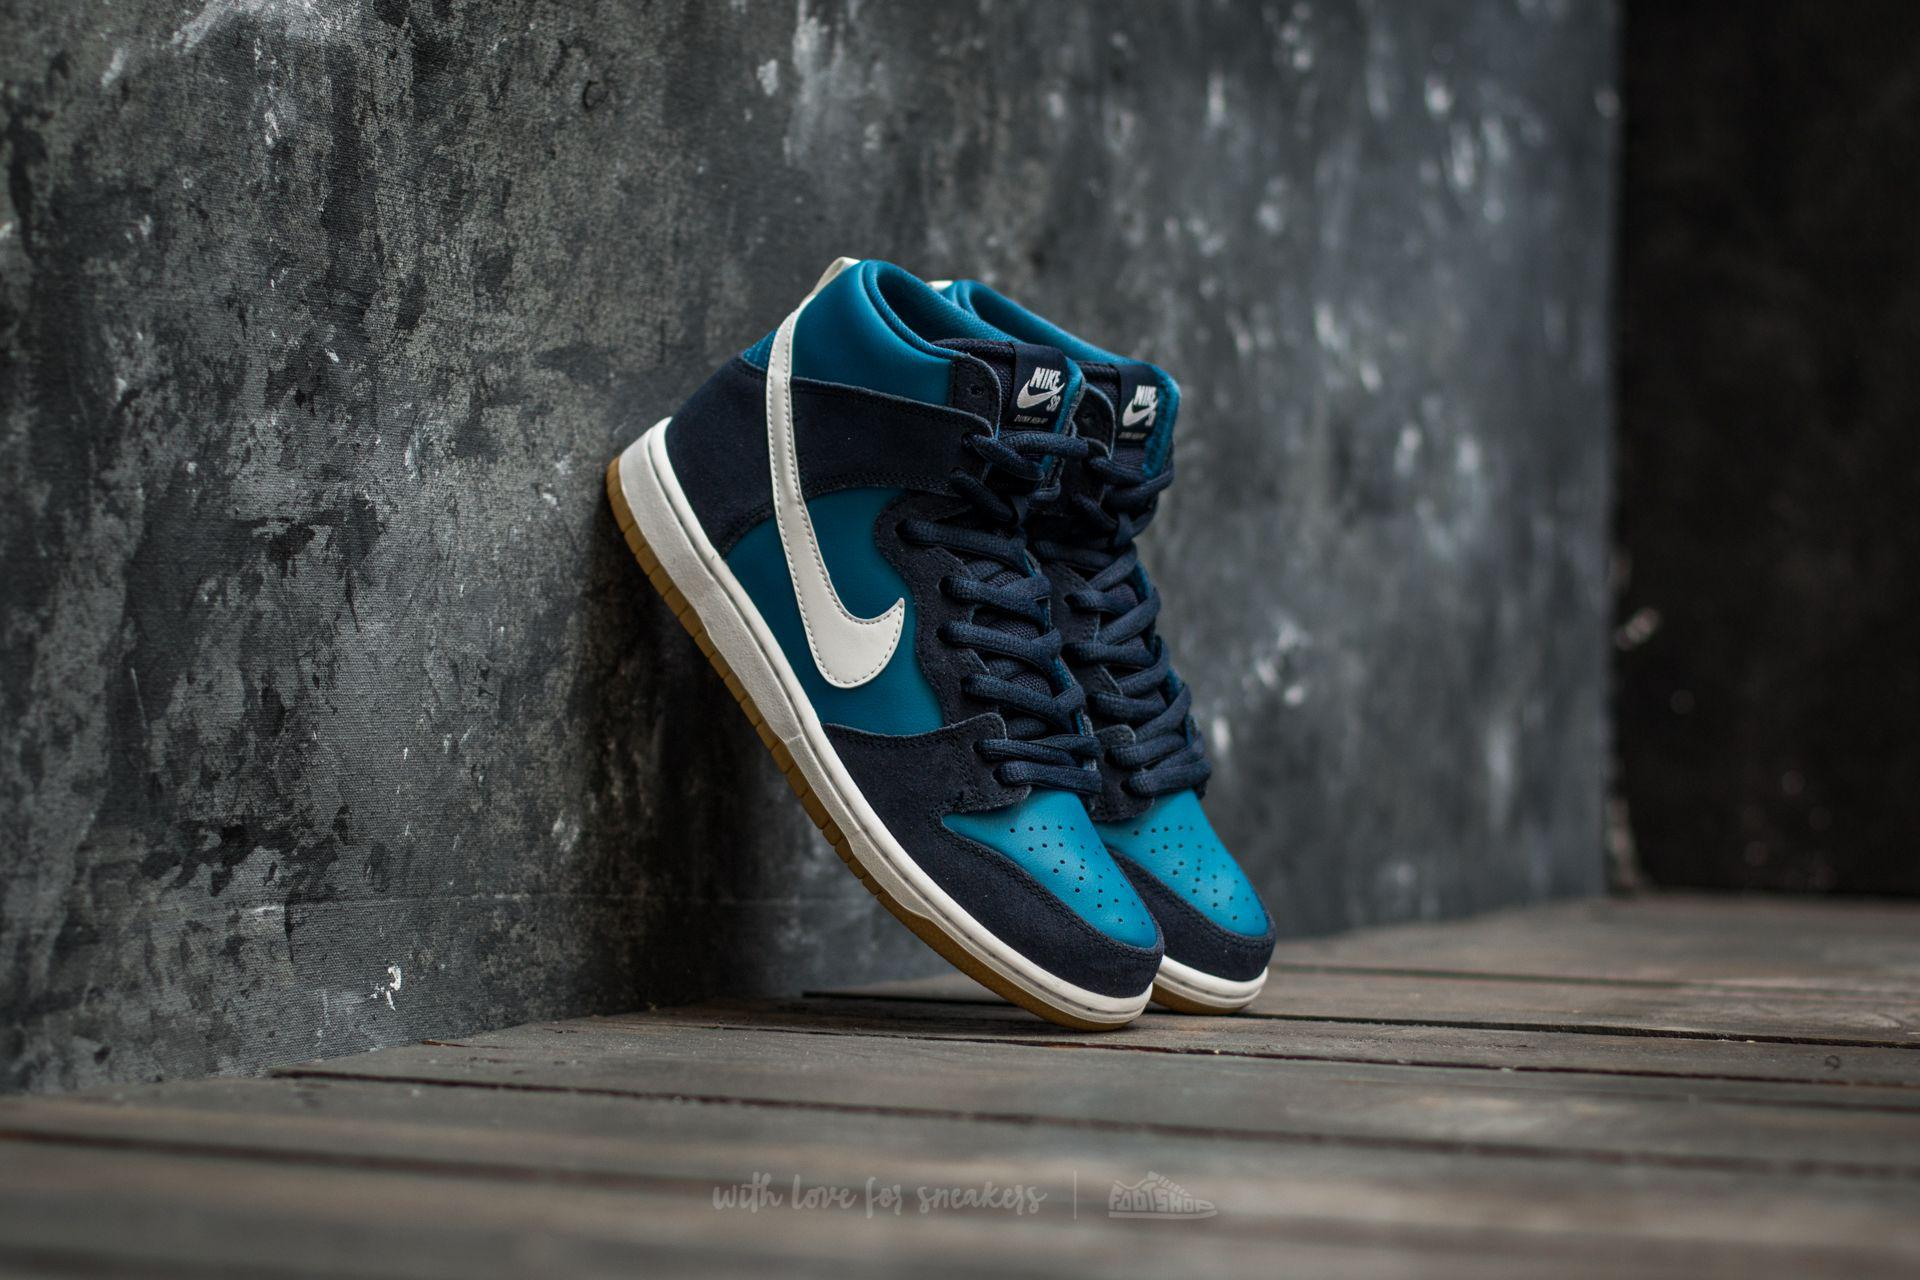 7bcb4abcc2 ... coupon lyst nike sb zoom dunk high pro obsidian white industrial blue  in 444fc c2f33